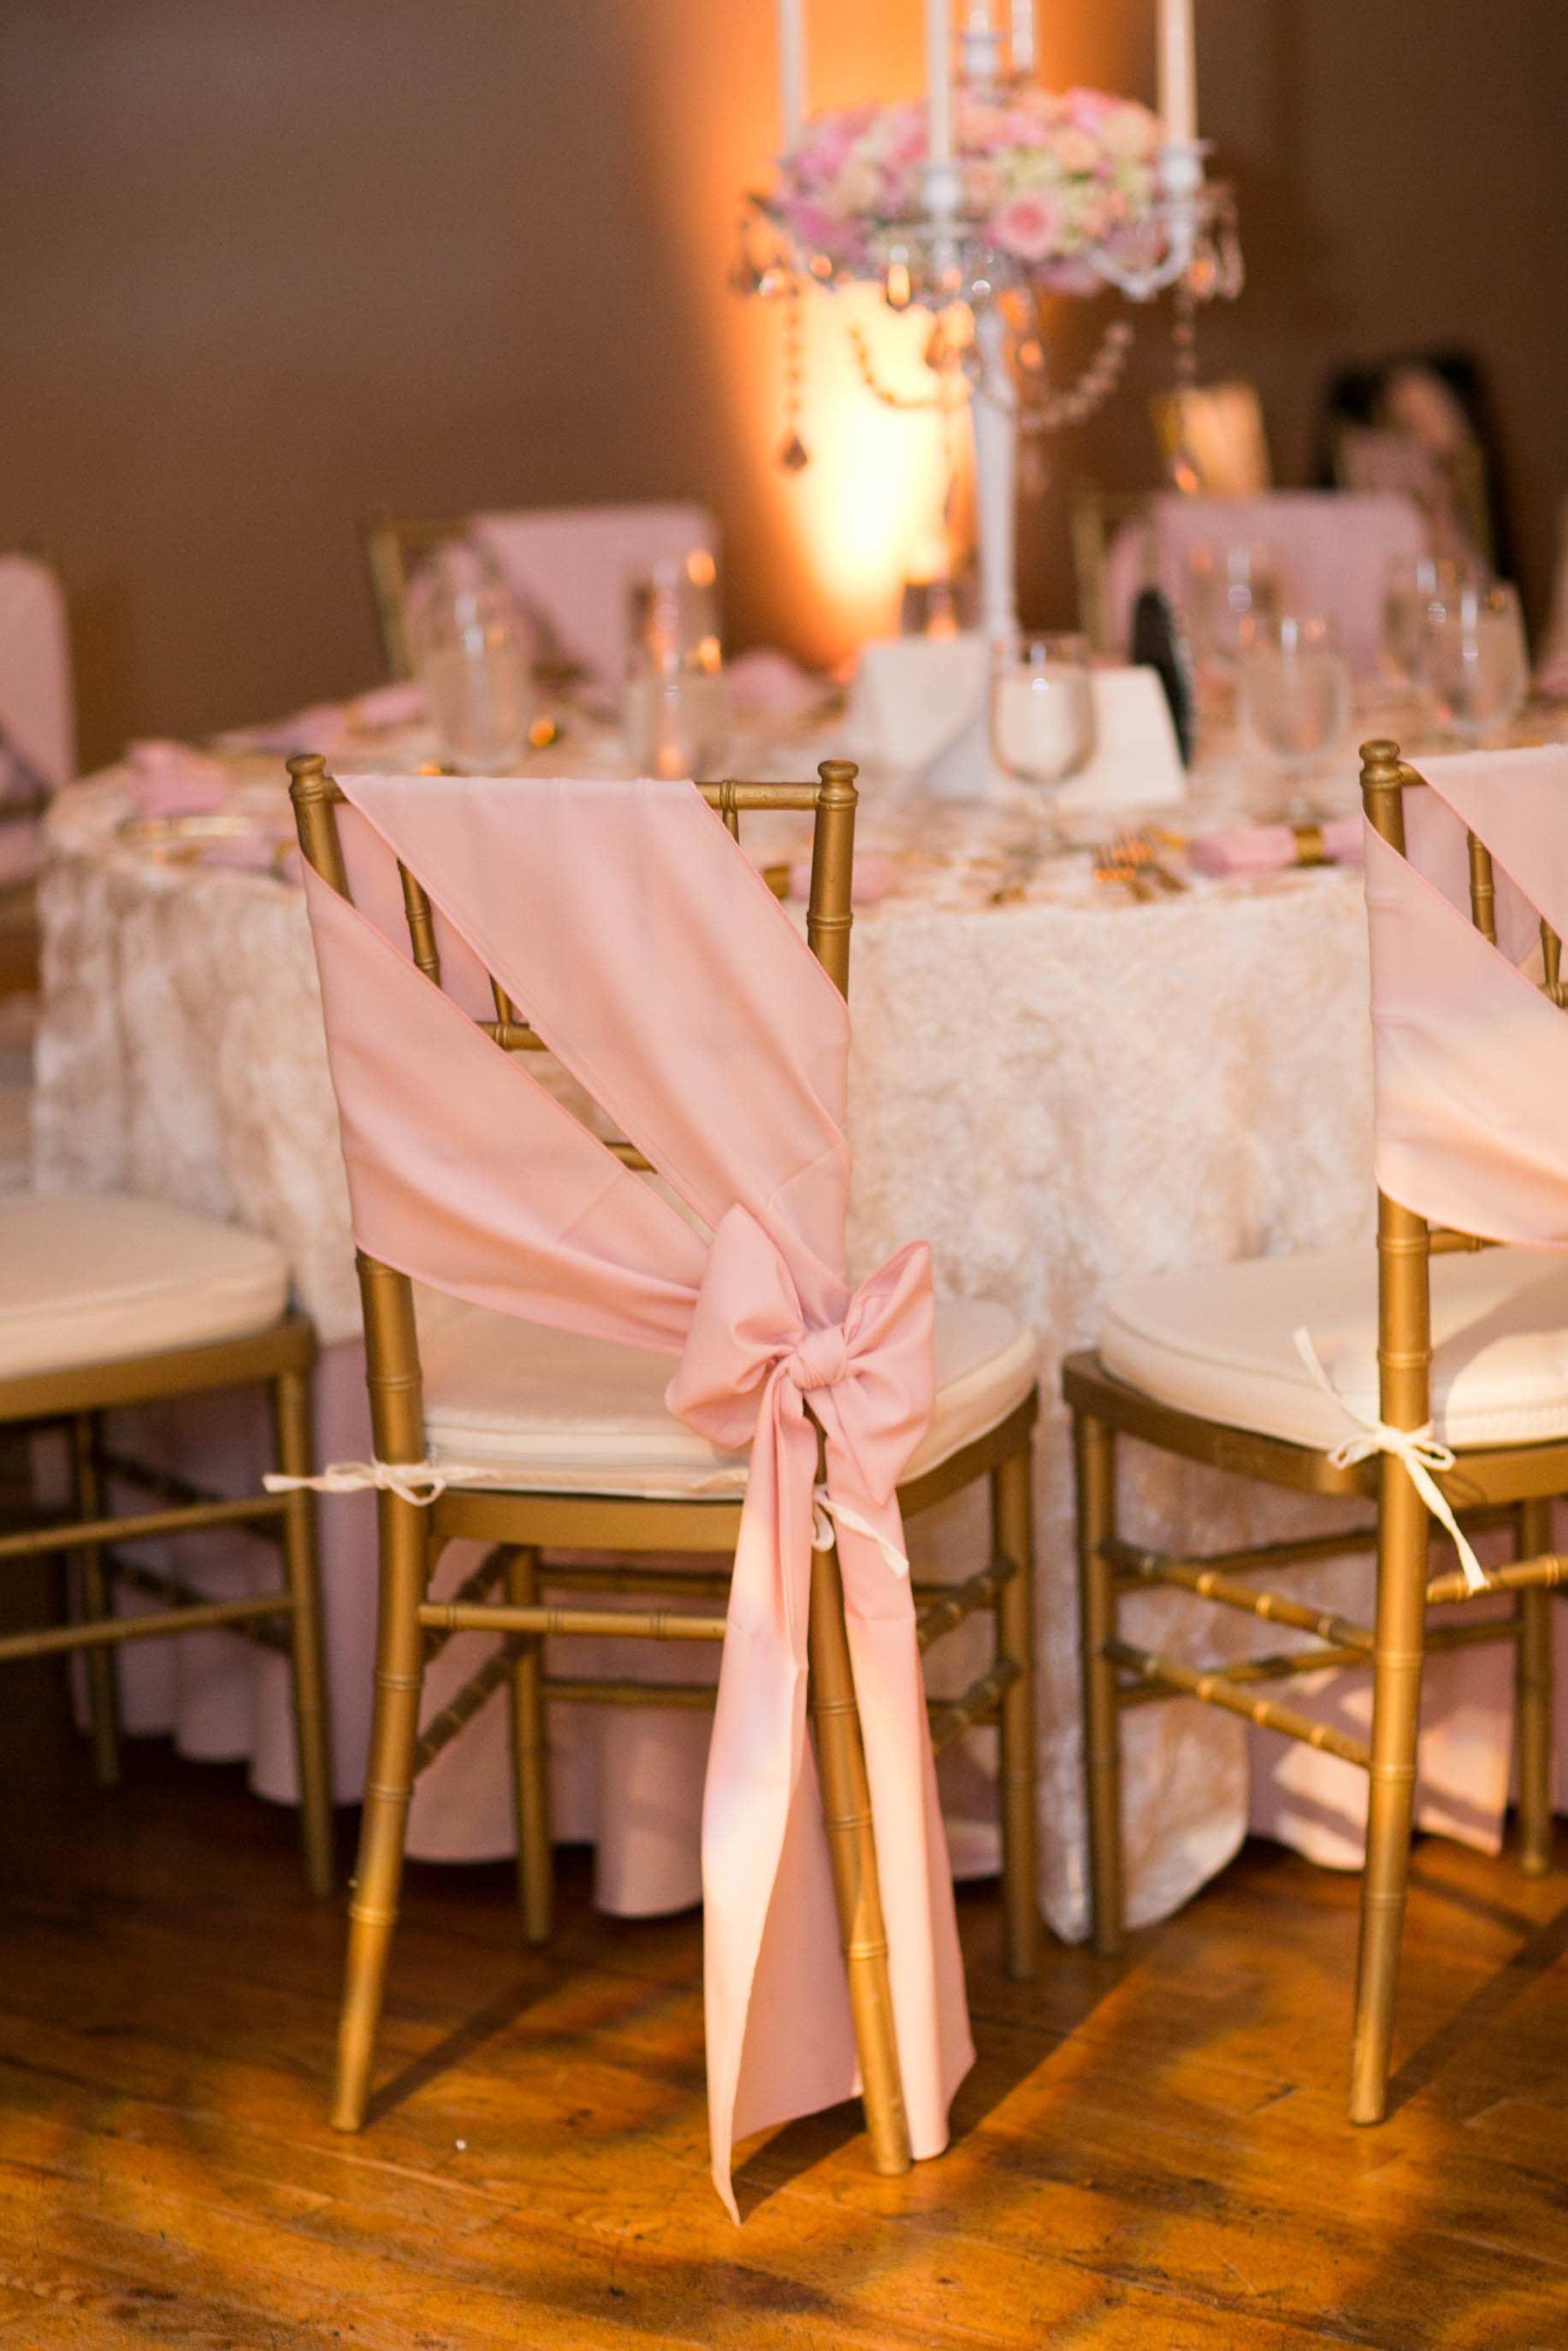 chair covers wedding yorkshire heated stadium chairs with backs 20 creative diy ideas satin sash